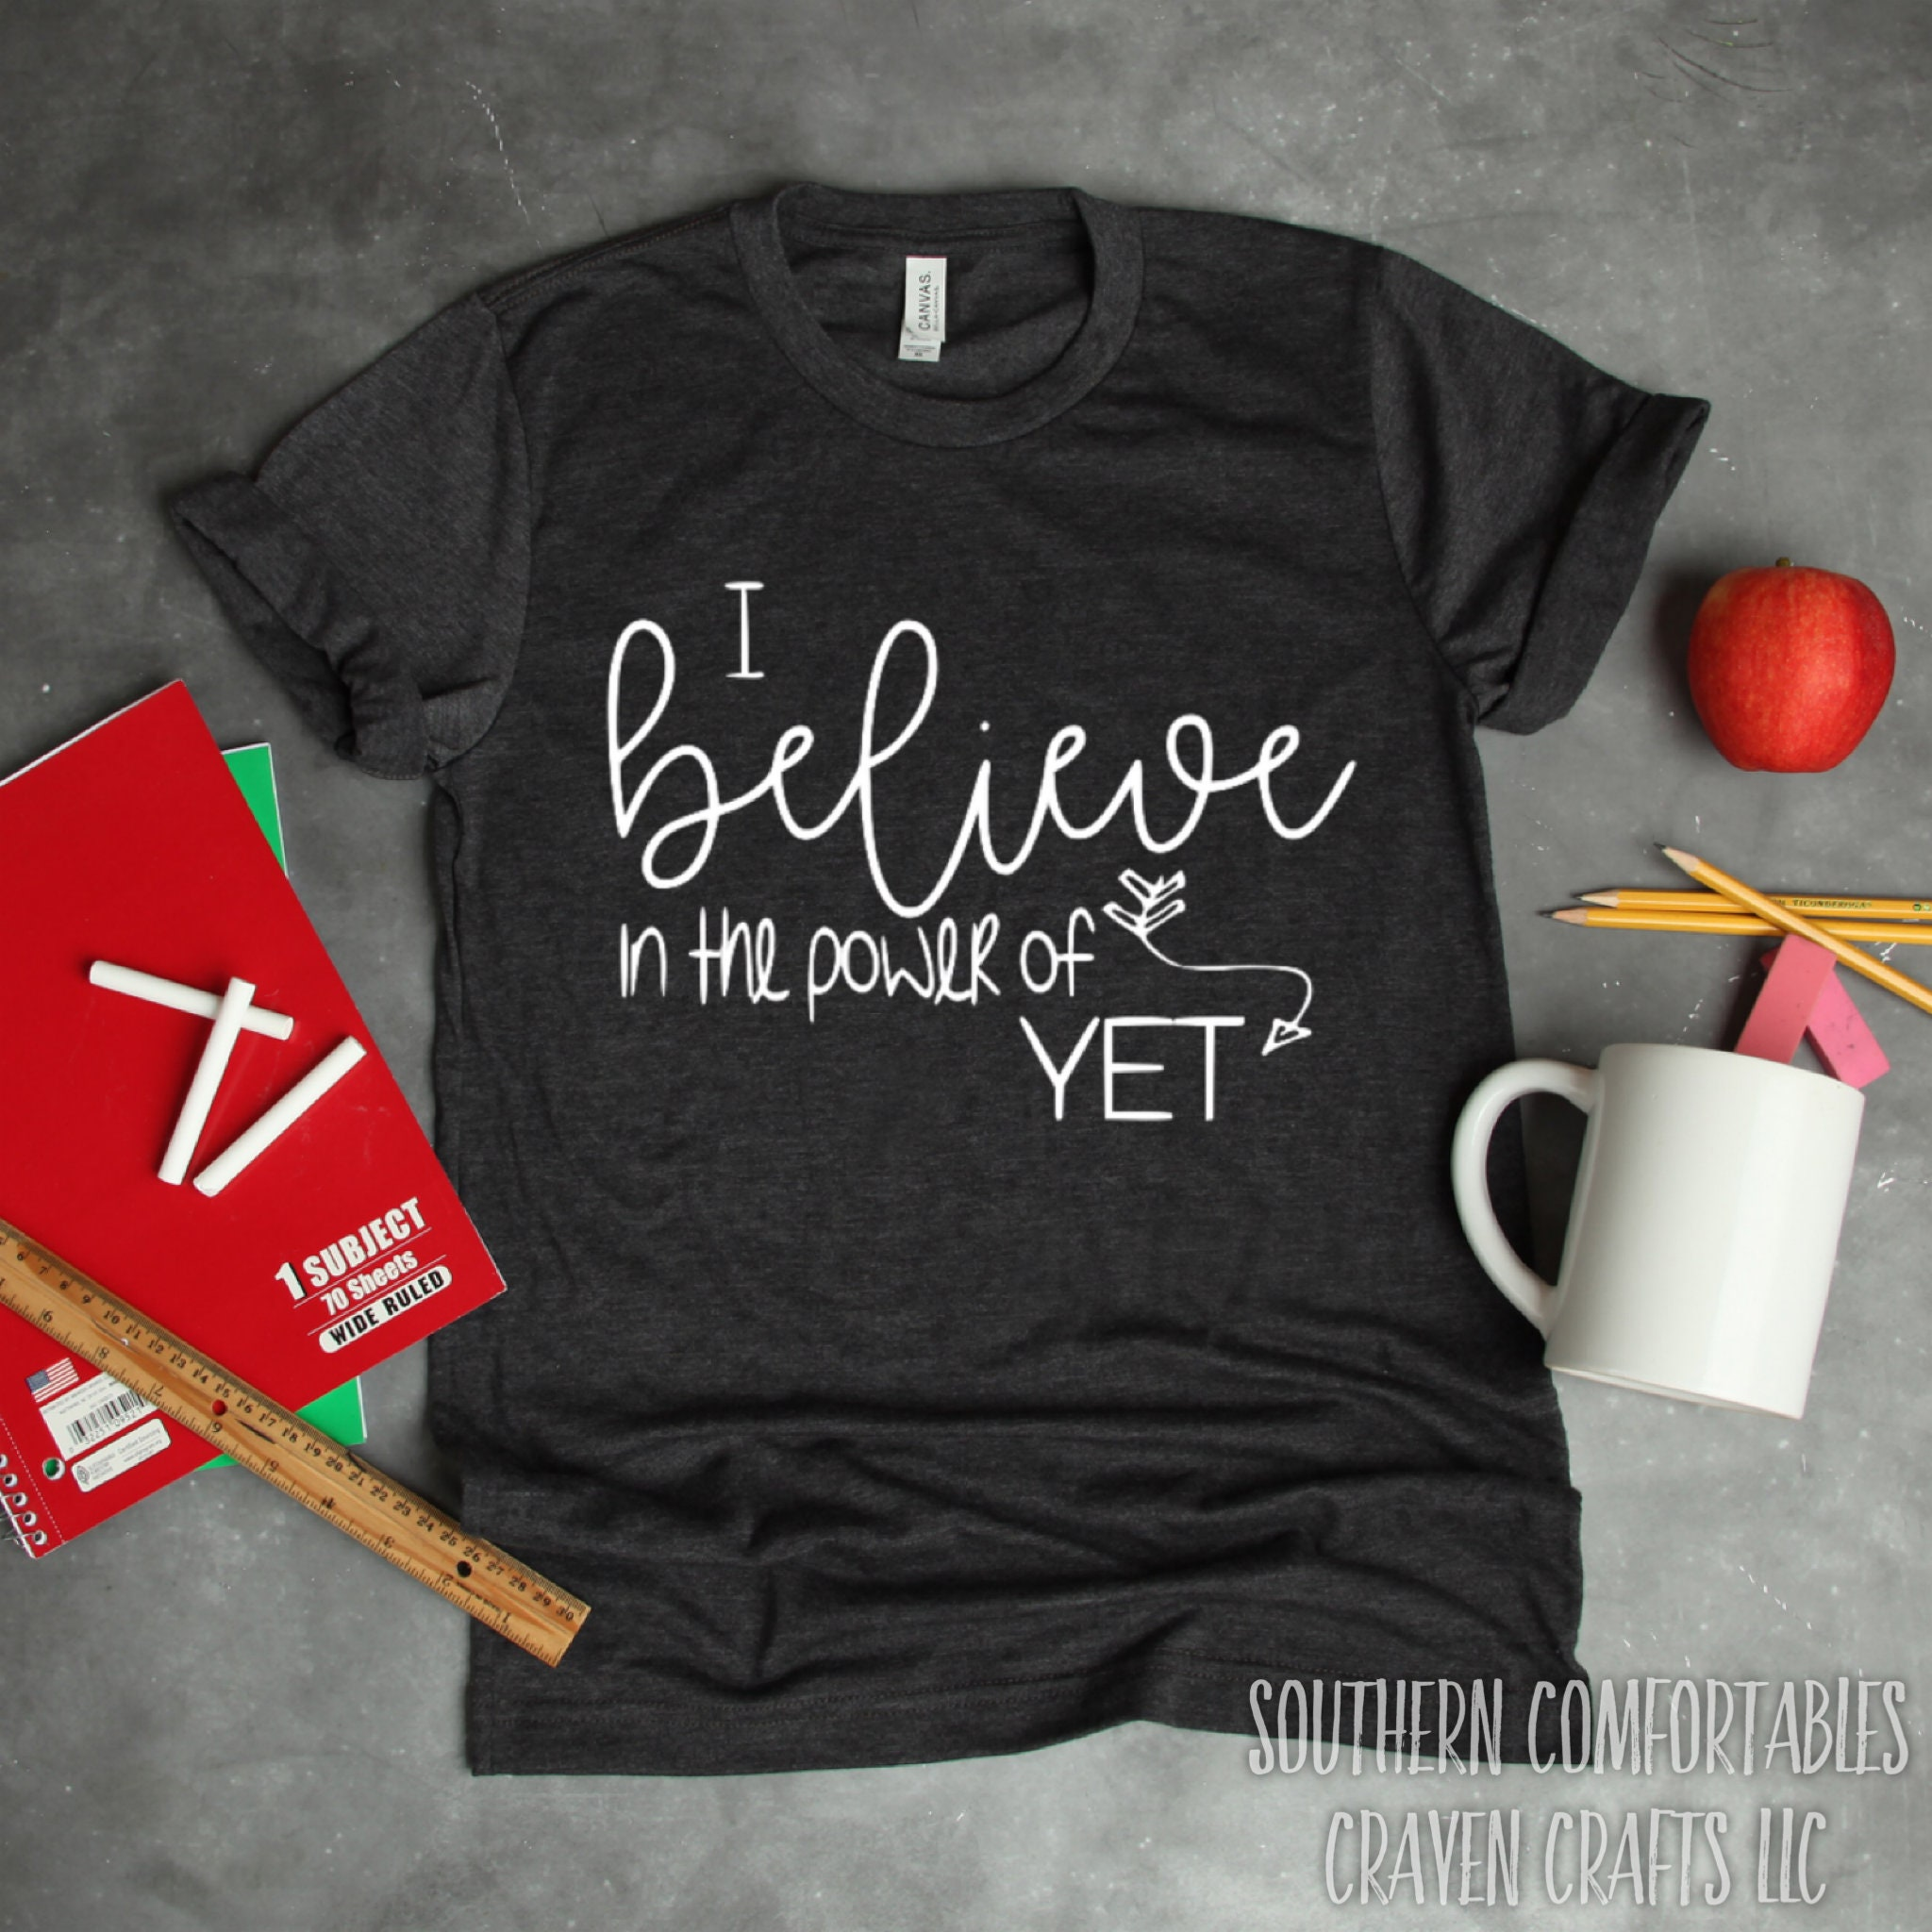 40e16eb0338 Power of Yet Shirt Growth Mindset Shirt I Believe in the